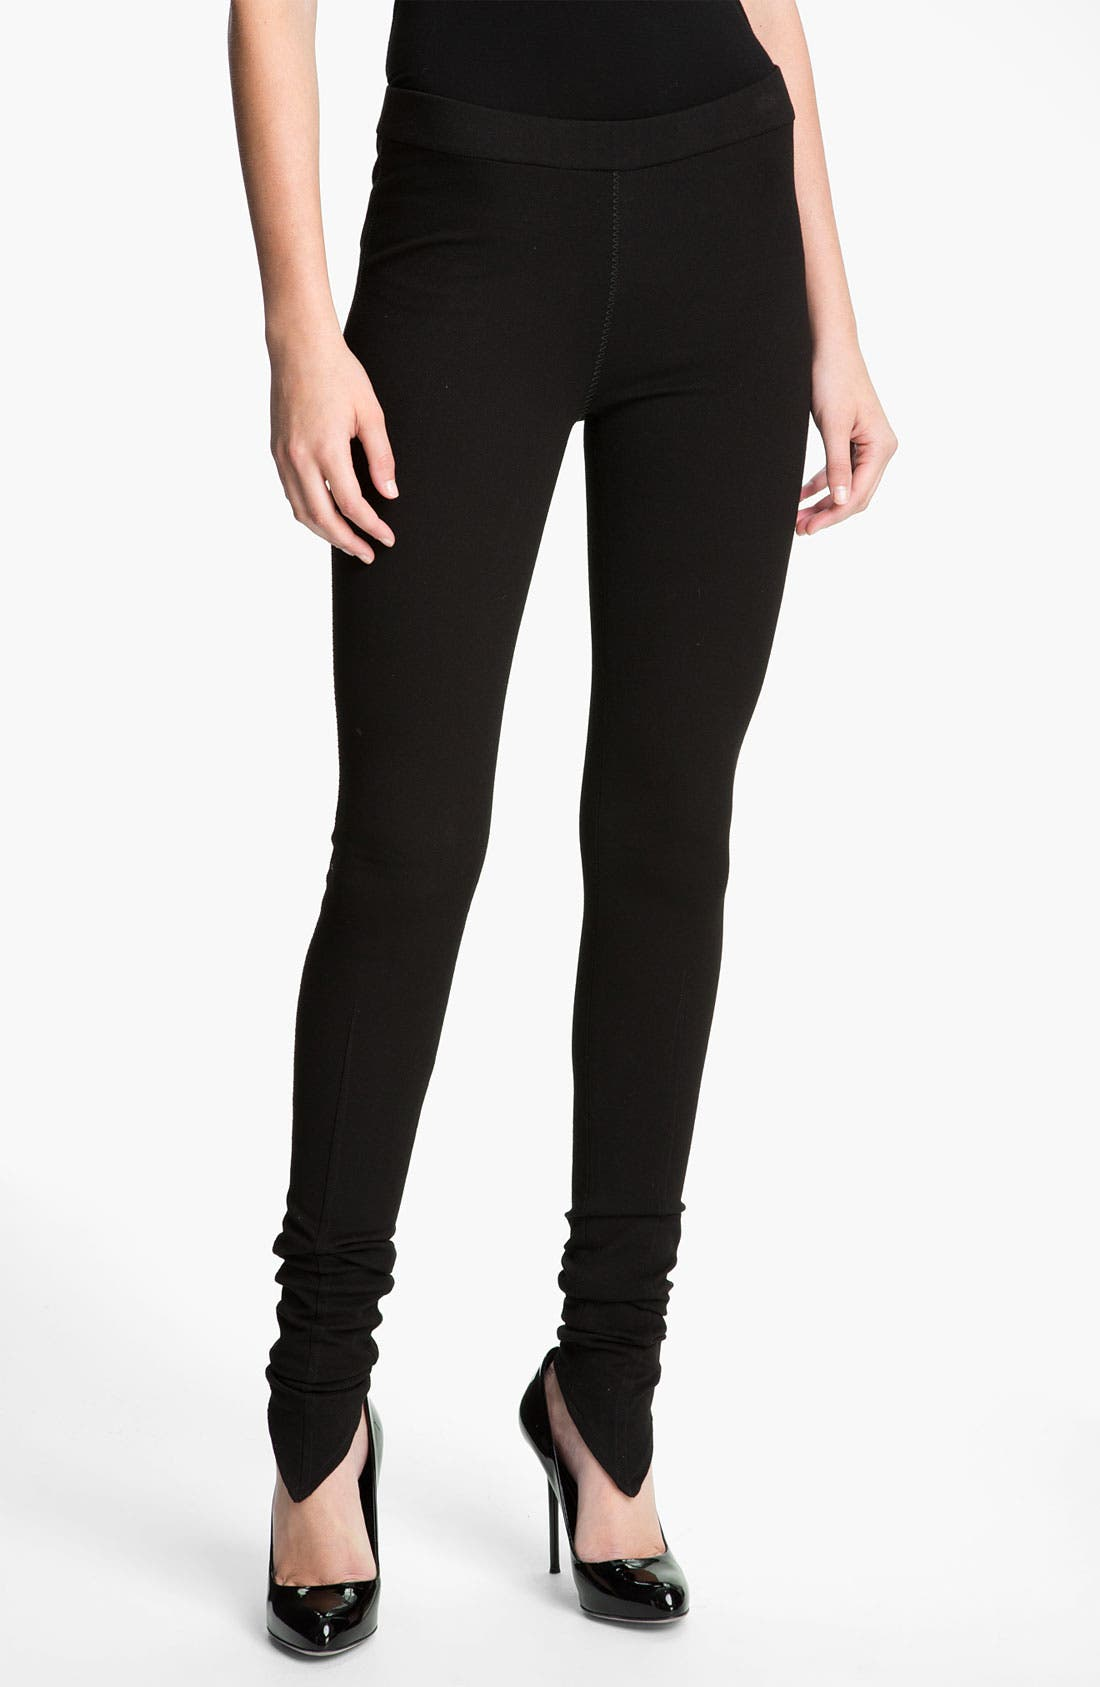 Alternate Image 1 Selected - Kelly Wearstler Micro Stretch Knit Pants